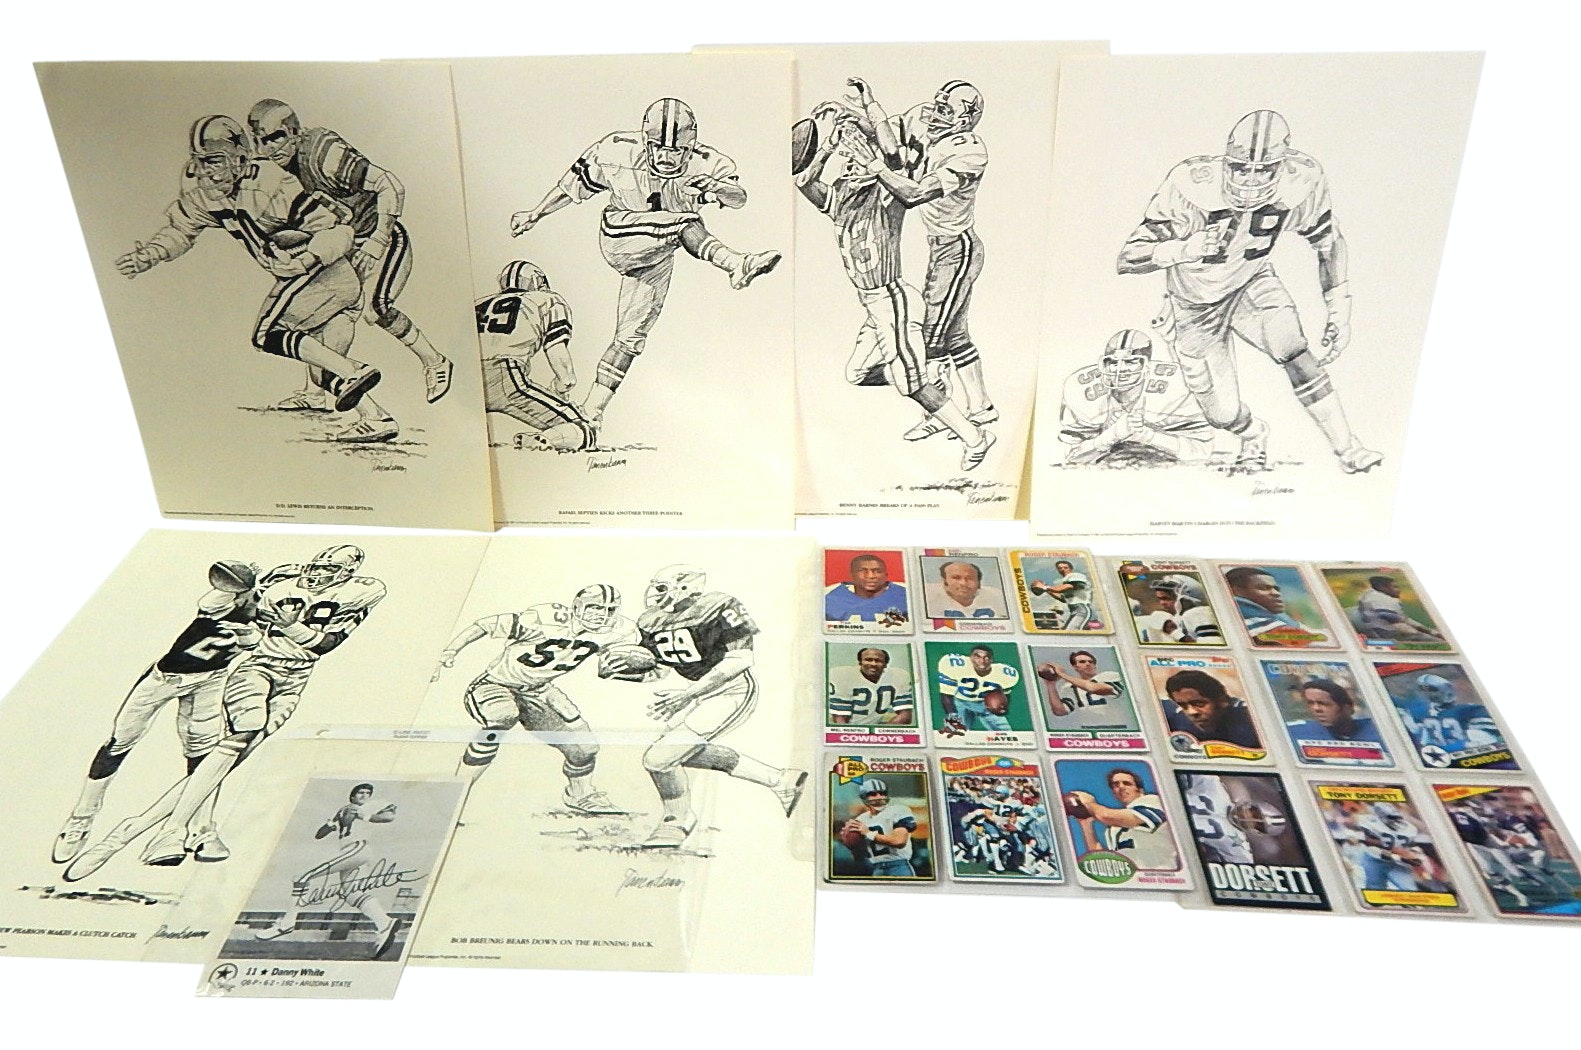 NFL Dallas Cowboy Prints and Football Cards and Danny White Signed Card